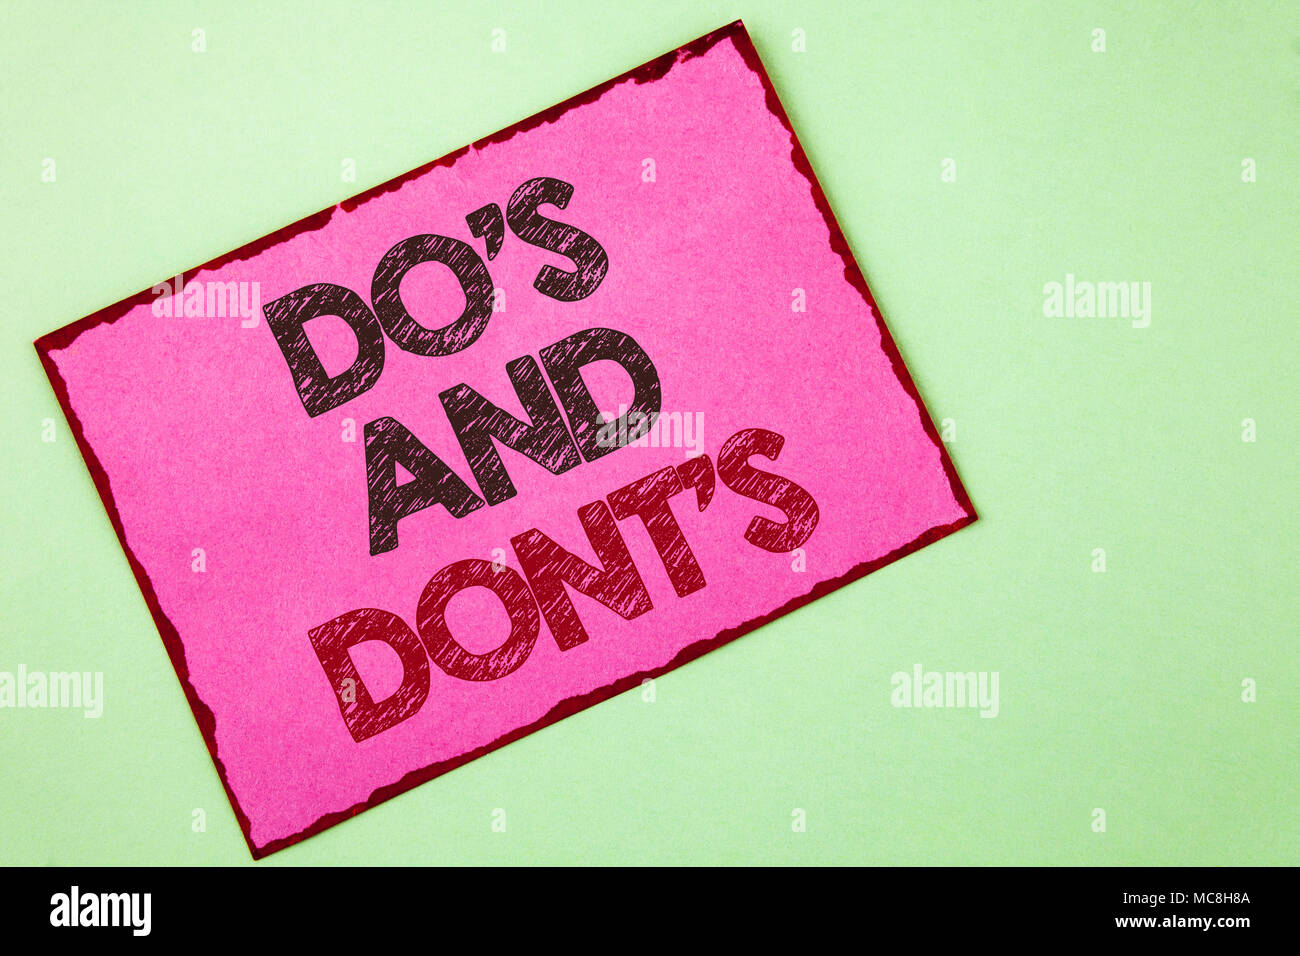 Dos And Donts Imágenes De Stock & Dos And Donts Fotos De Stock - Alamy